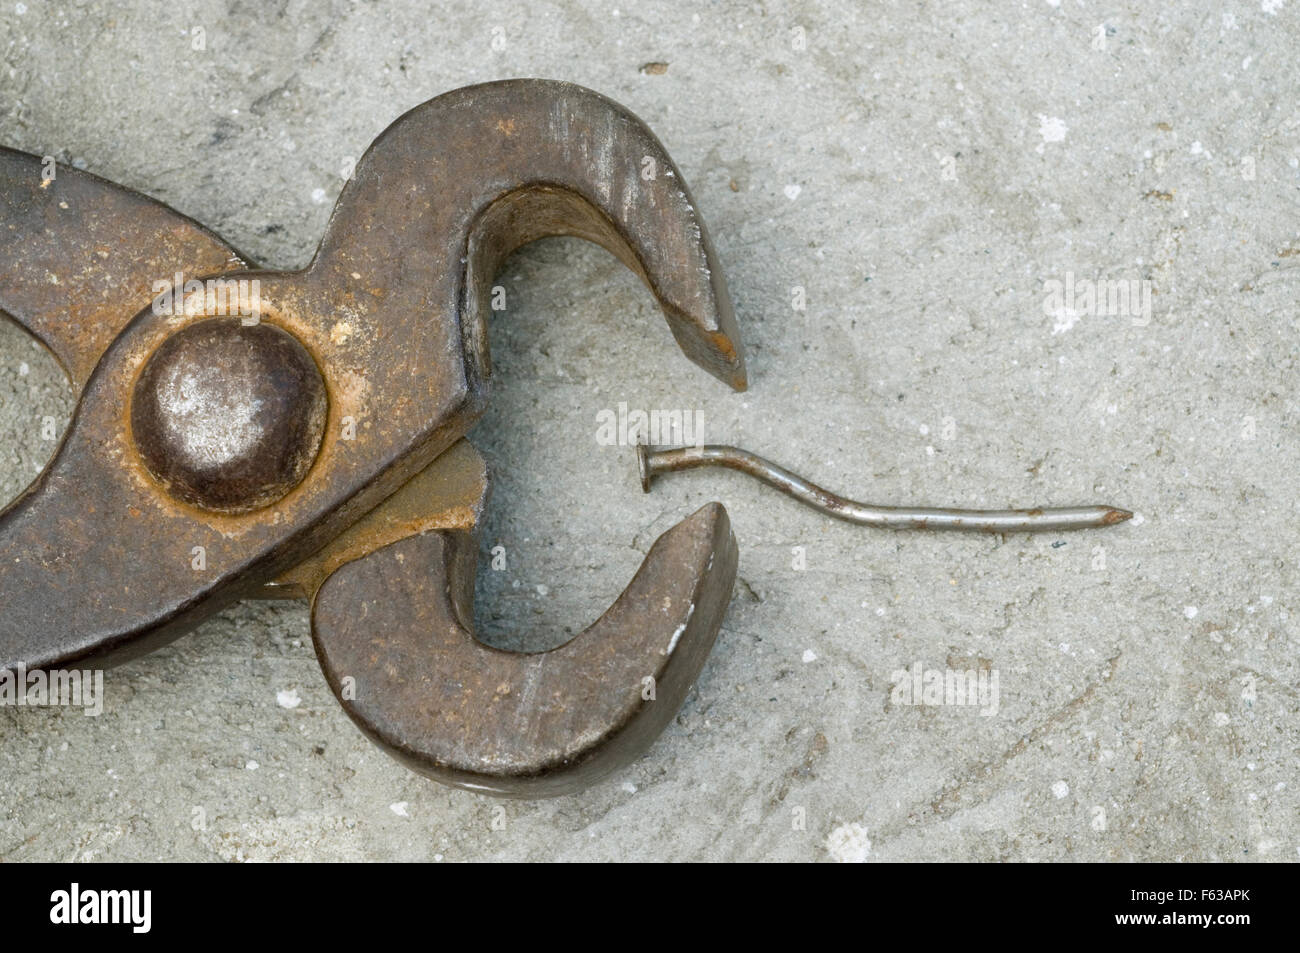 rusty tongs and nail on concrete background - Stock Image